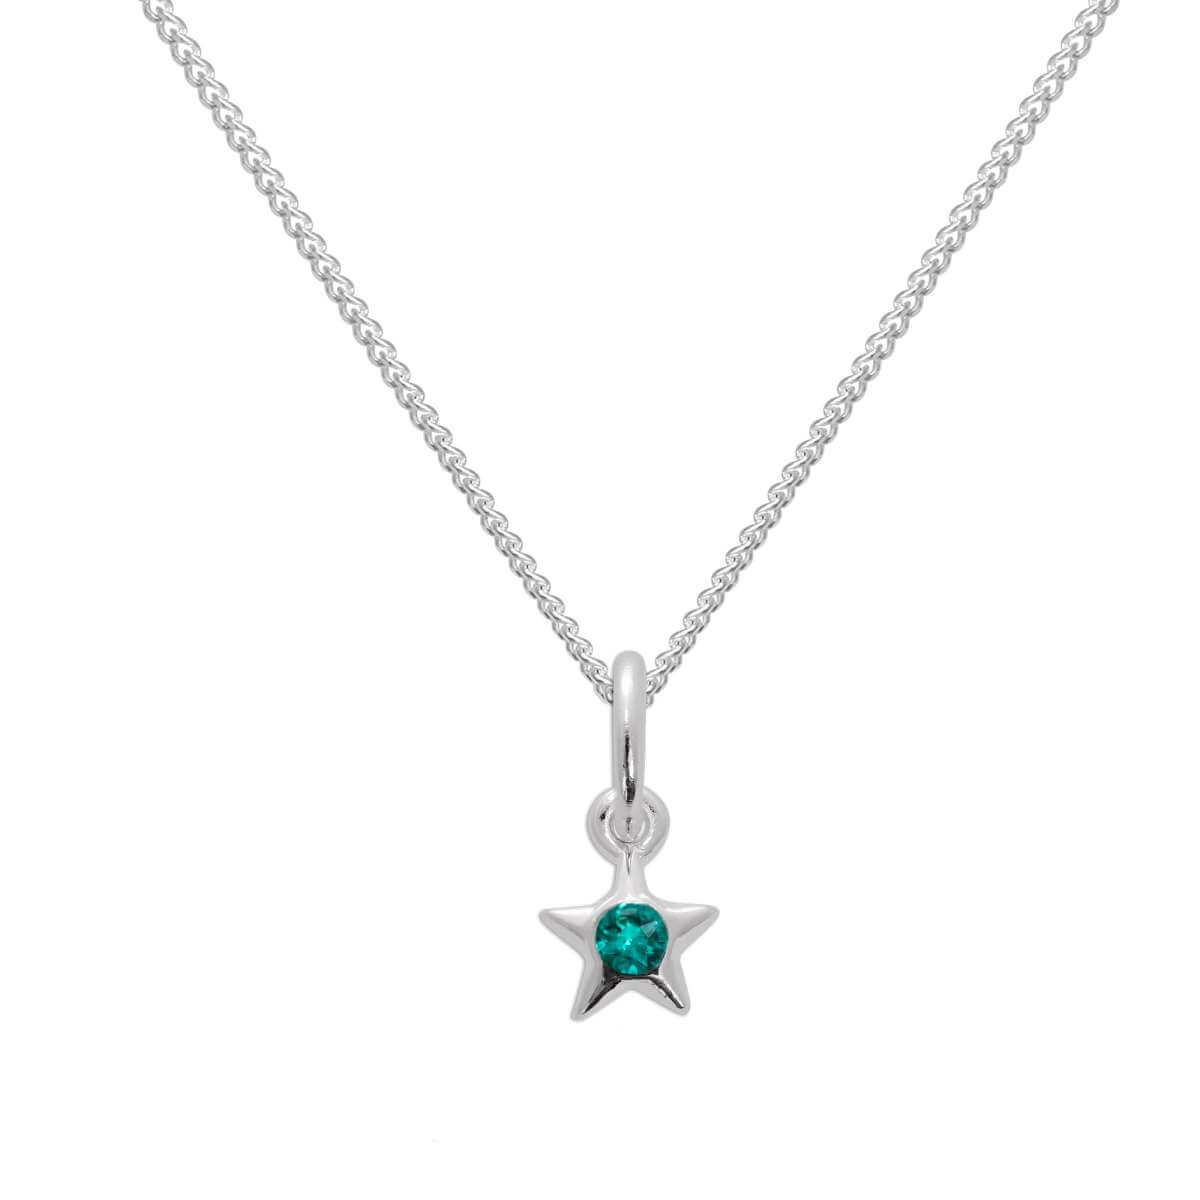 Sterling Silver & Turquoise CZ Crystal December Birthstone Star Pendant Necklace 14 - 32 Inches